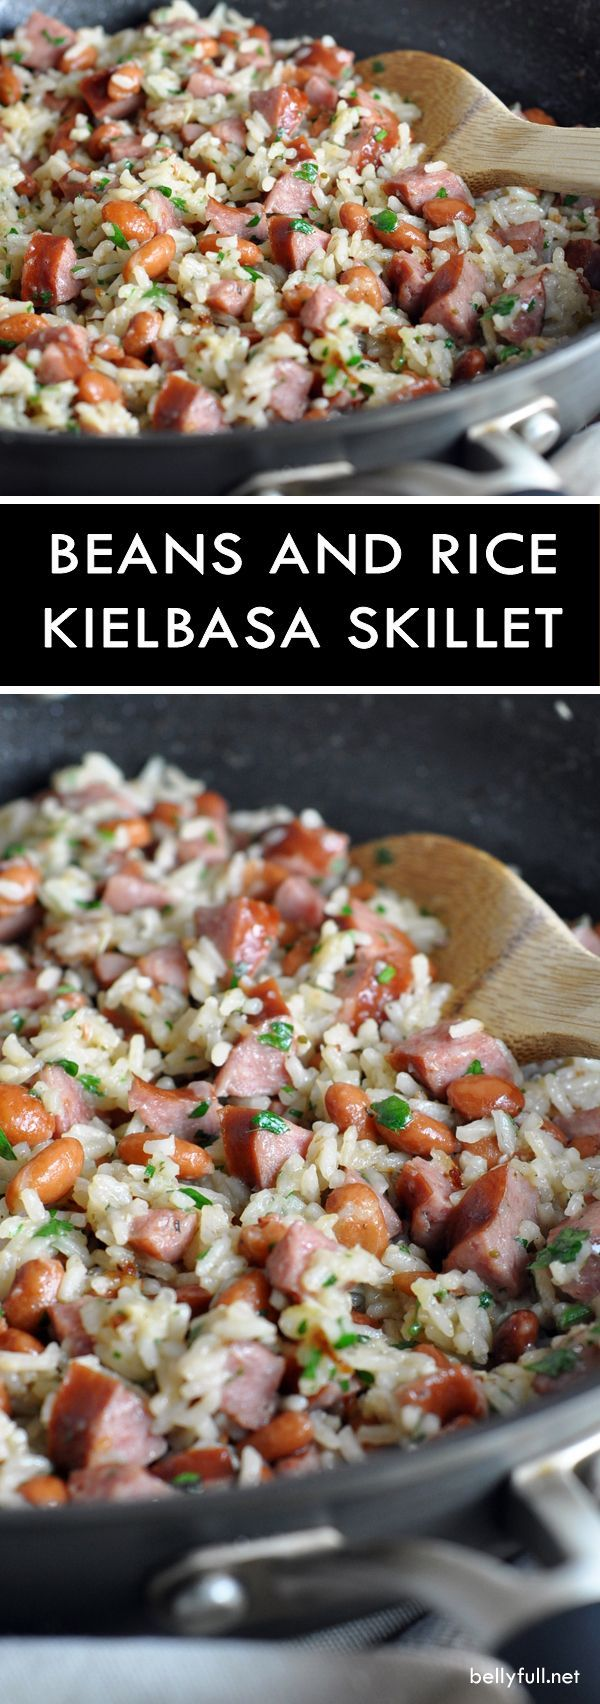 ONE-PAN BEANS AND RICE WITH KIELBASA - rice, pinto beans, and smoky pork kielbasa is combined for a delicious and quick skillet meal!